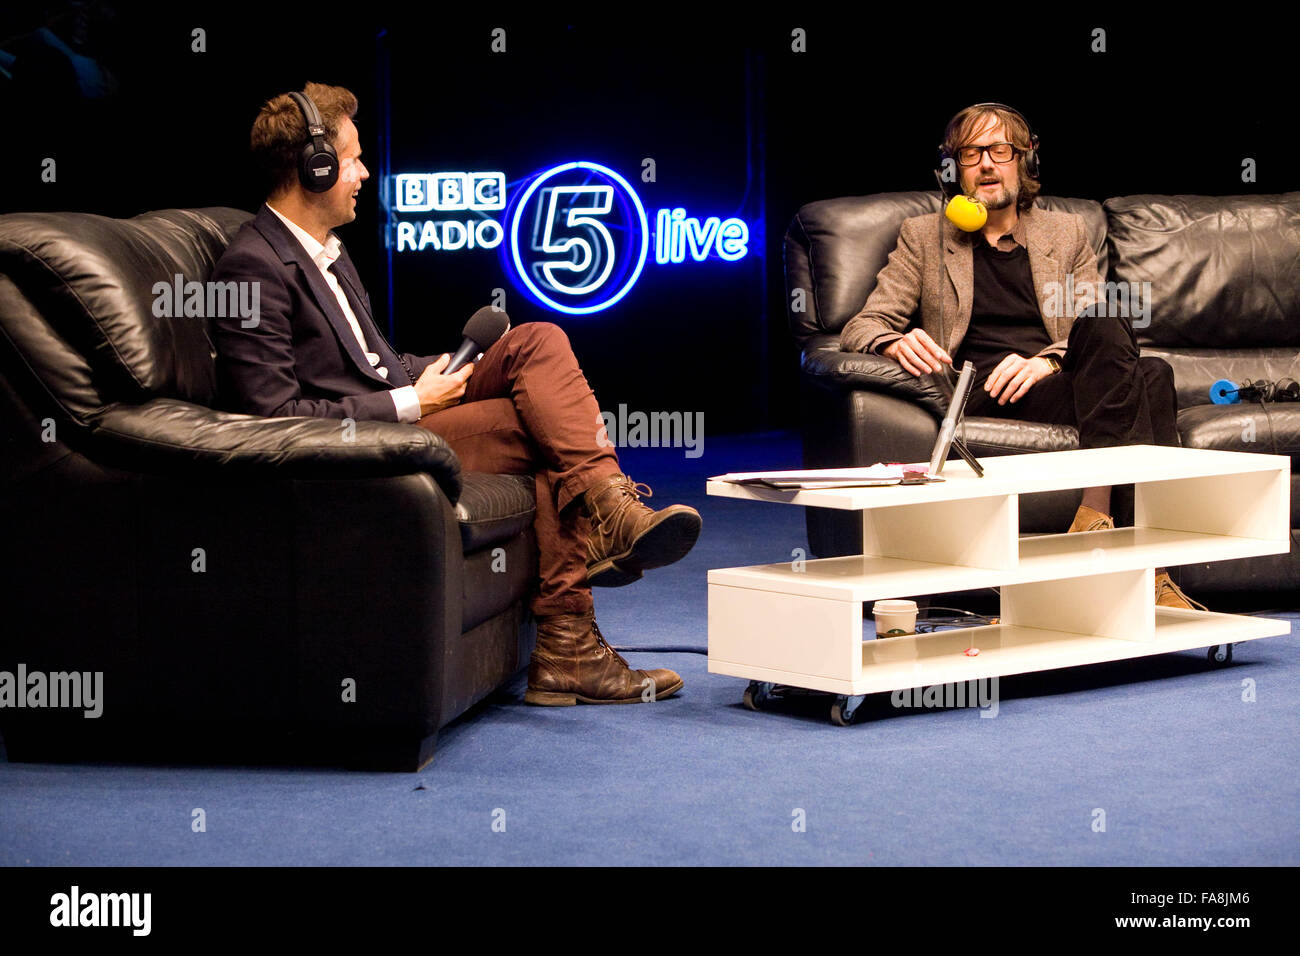 BBC Radio 5 Live Octoberfest in Sheffield Thursday 11 10 12 Richard     BBC Radio 5 Live Octoberfest in Sheffield Thursday 11 10 12 Richard Bacon  and Jarvis Cocker